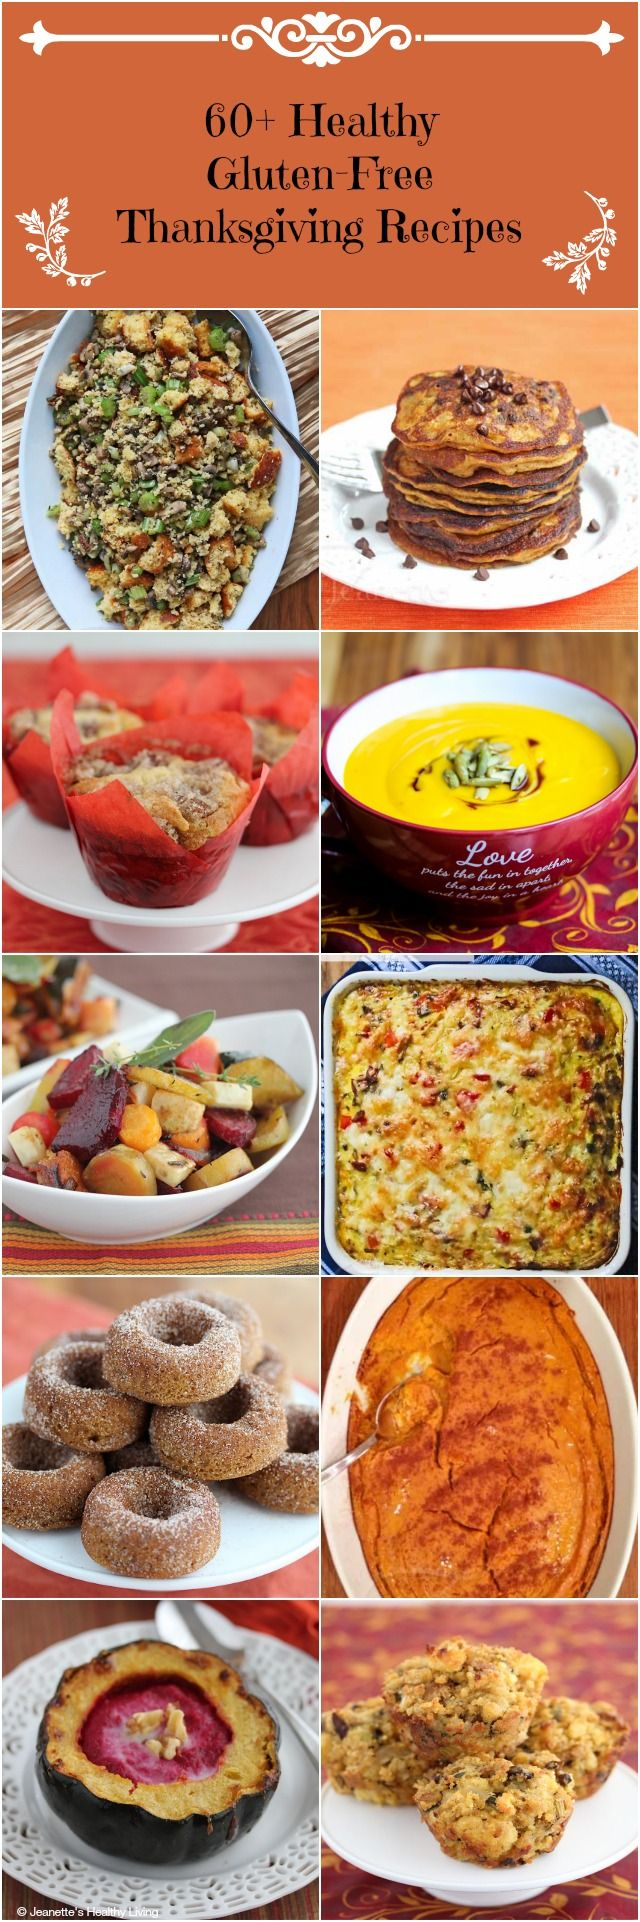 60 Healthy Gluten Free Thanksgiving Recipes - Pin this now and refer to it for planning your Thanksgiving and Holiday menus